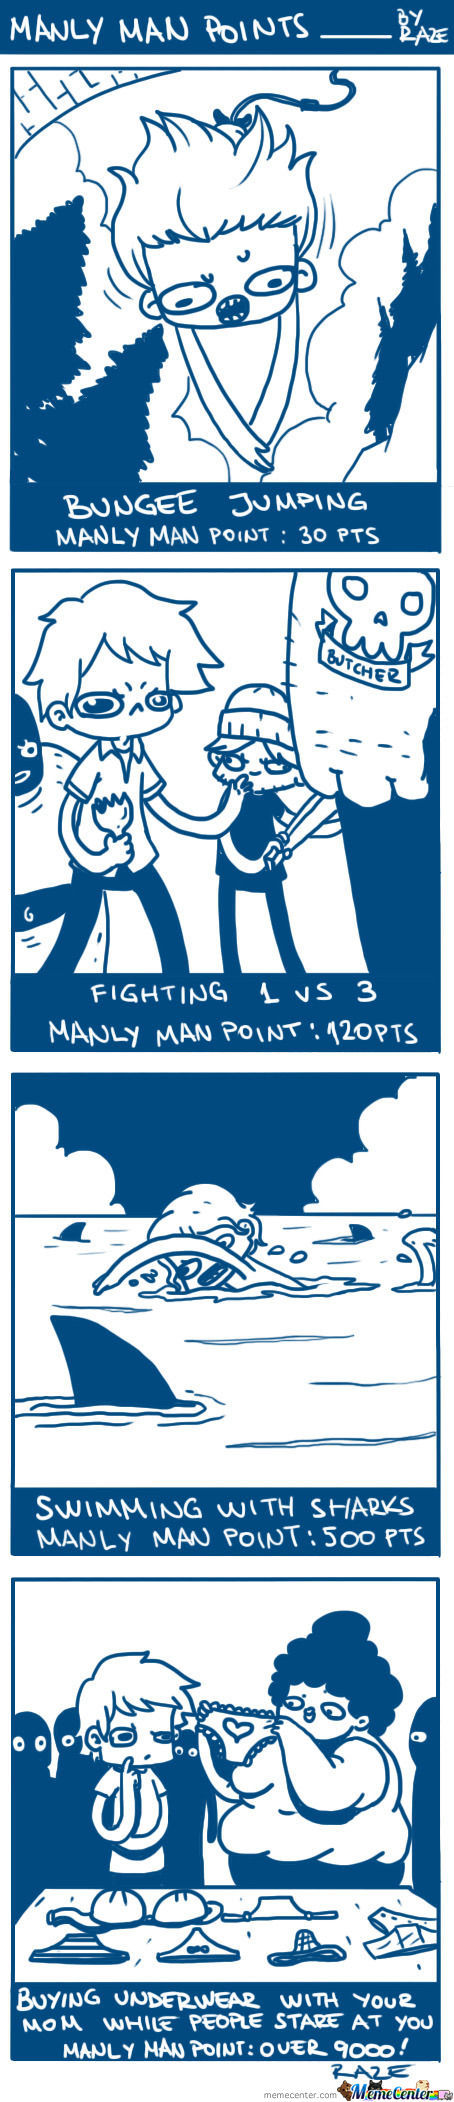 Manly Man Points